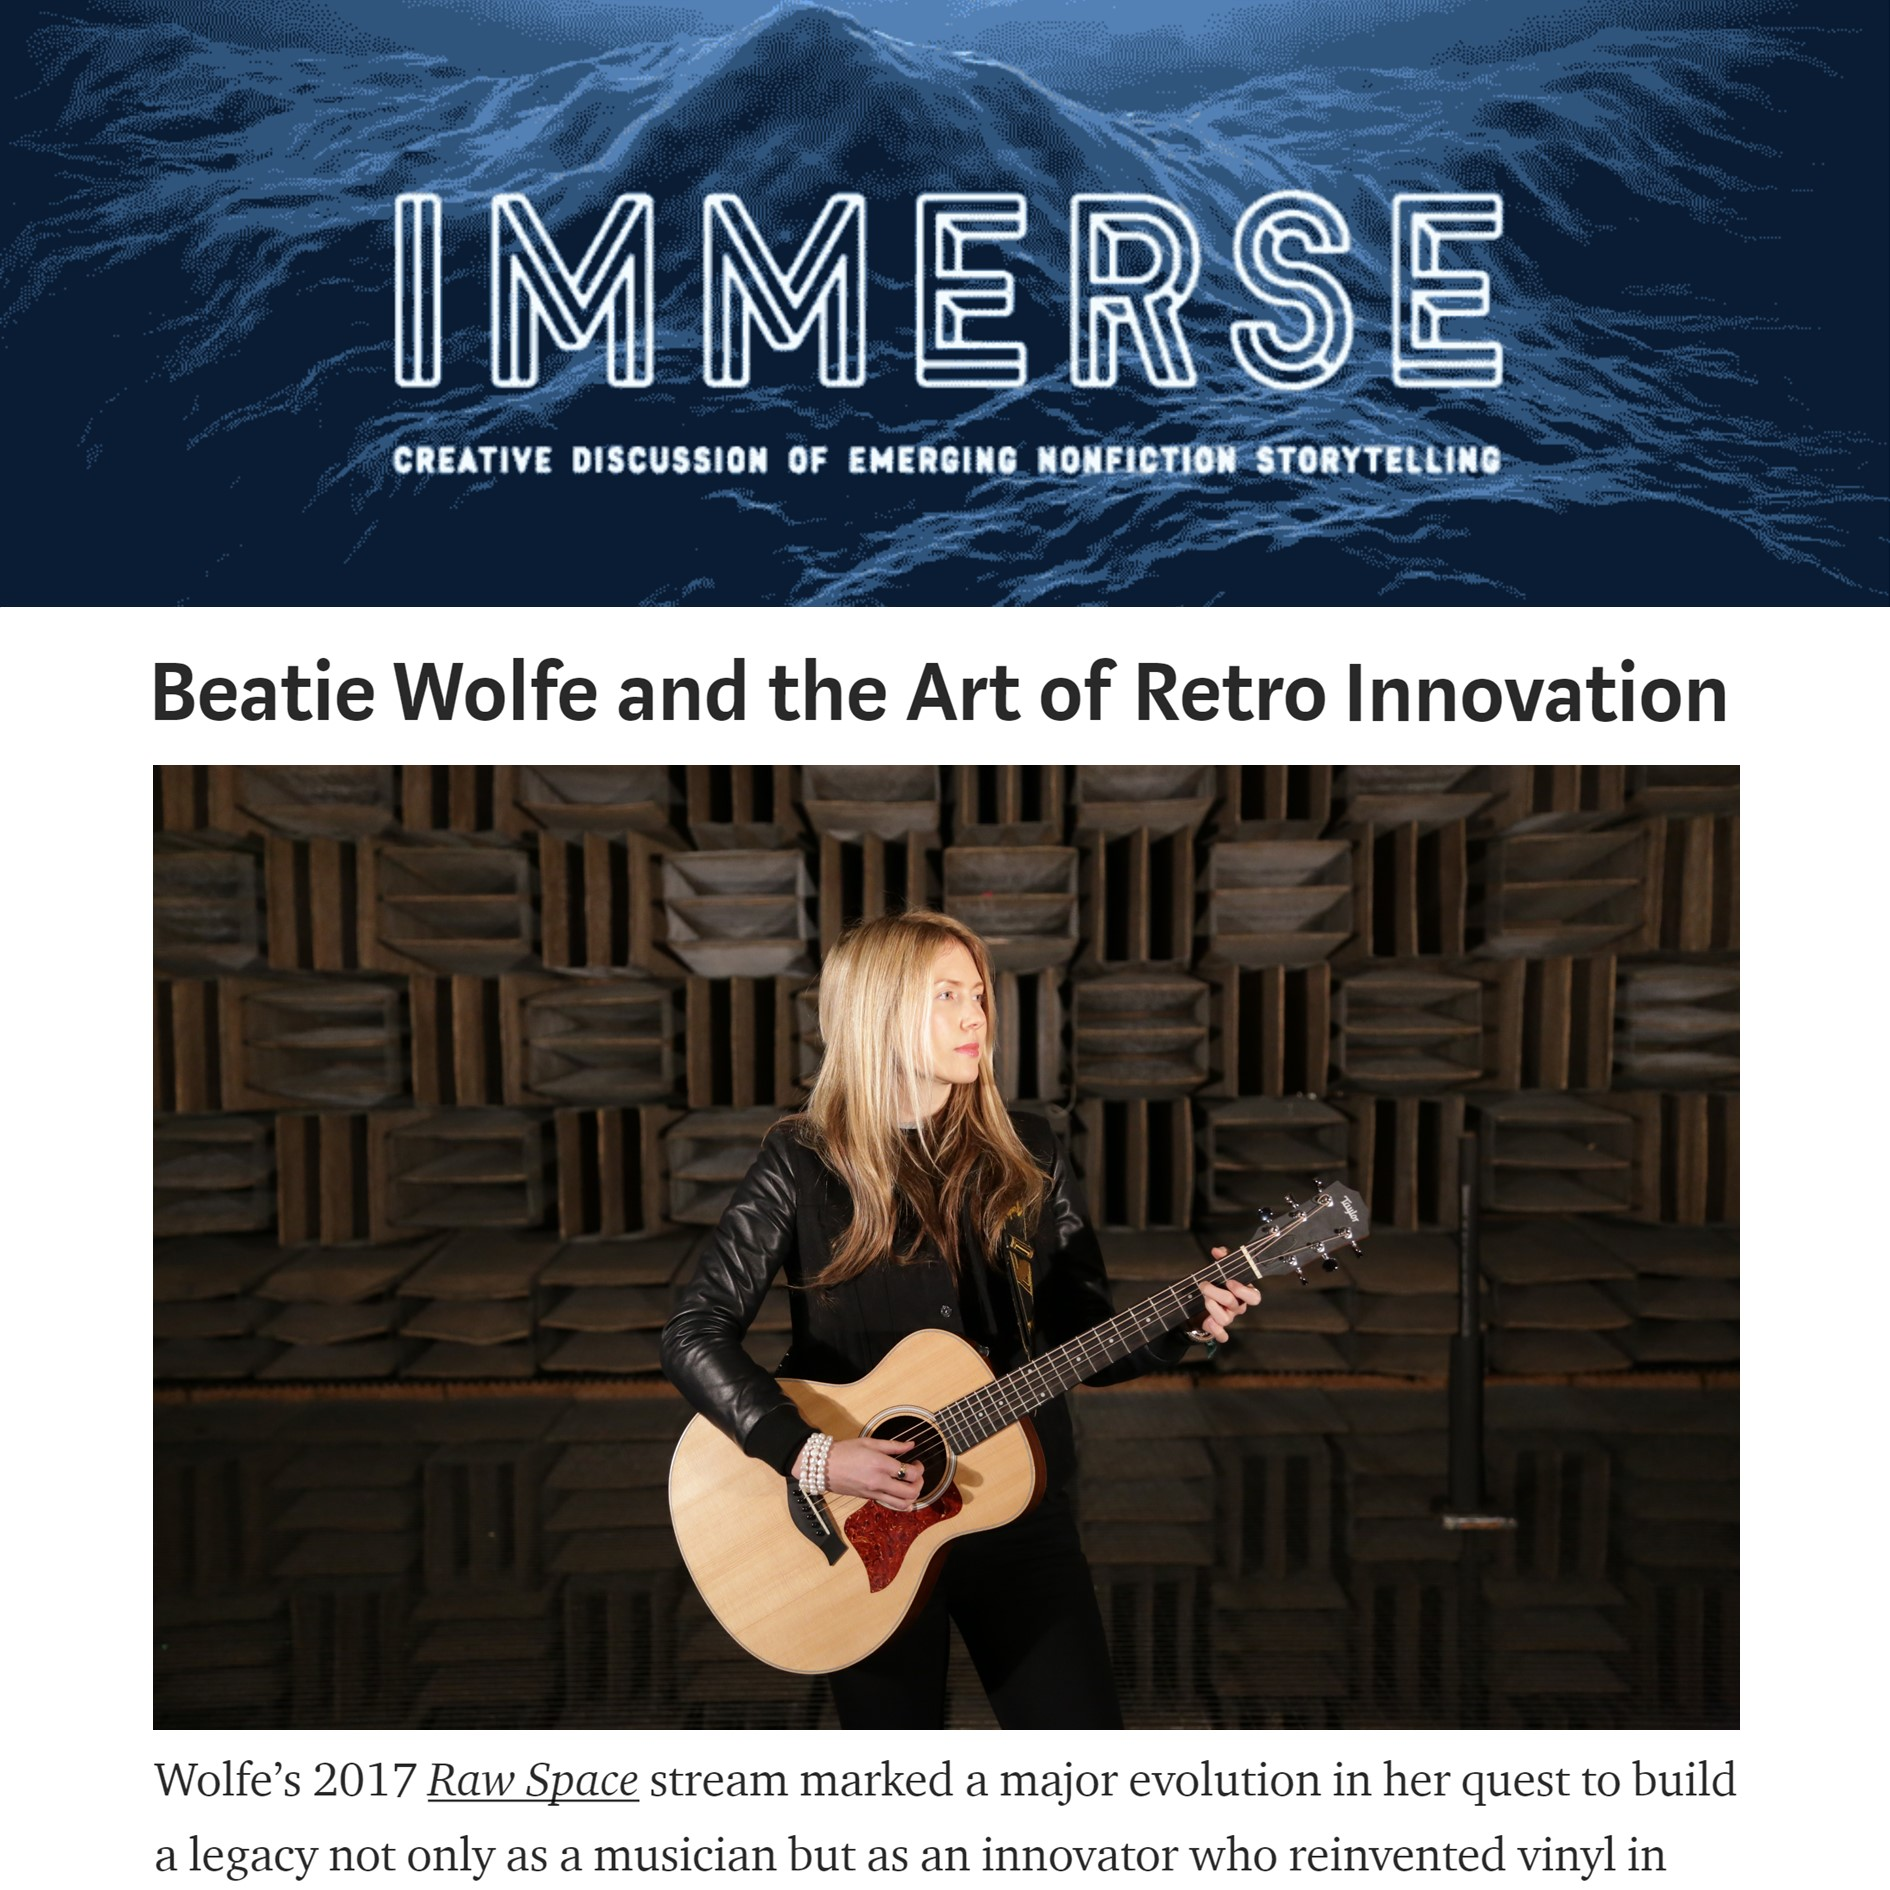 Immerse Article on Beatie Wolfe